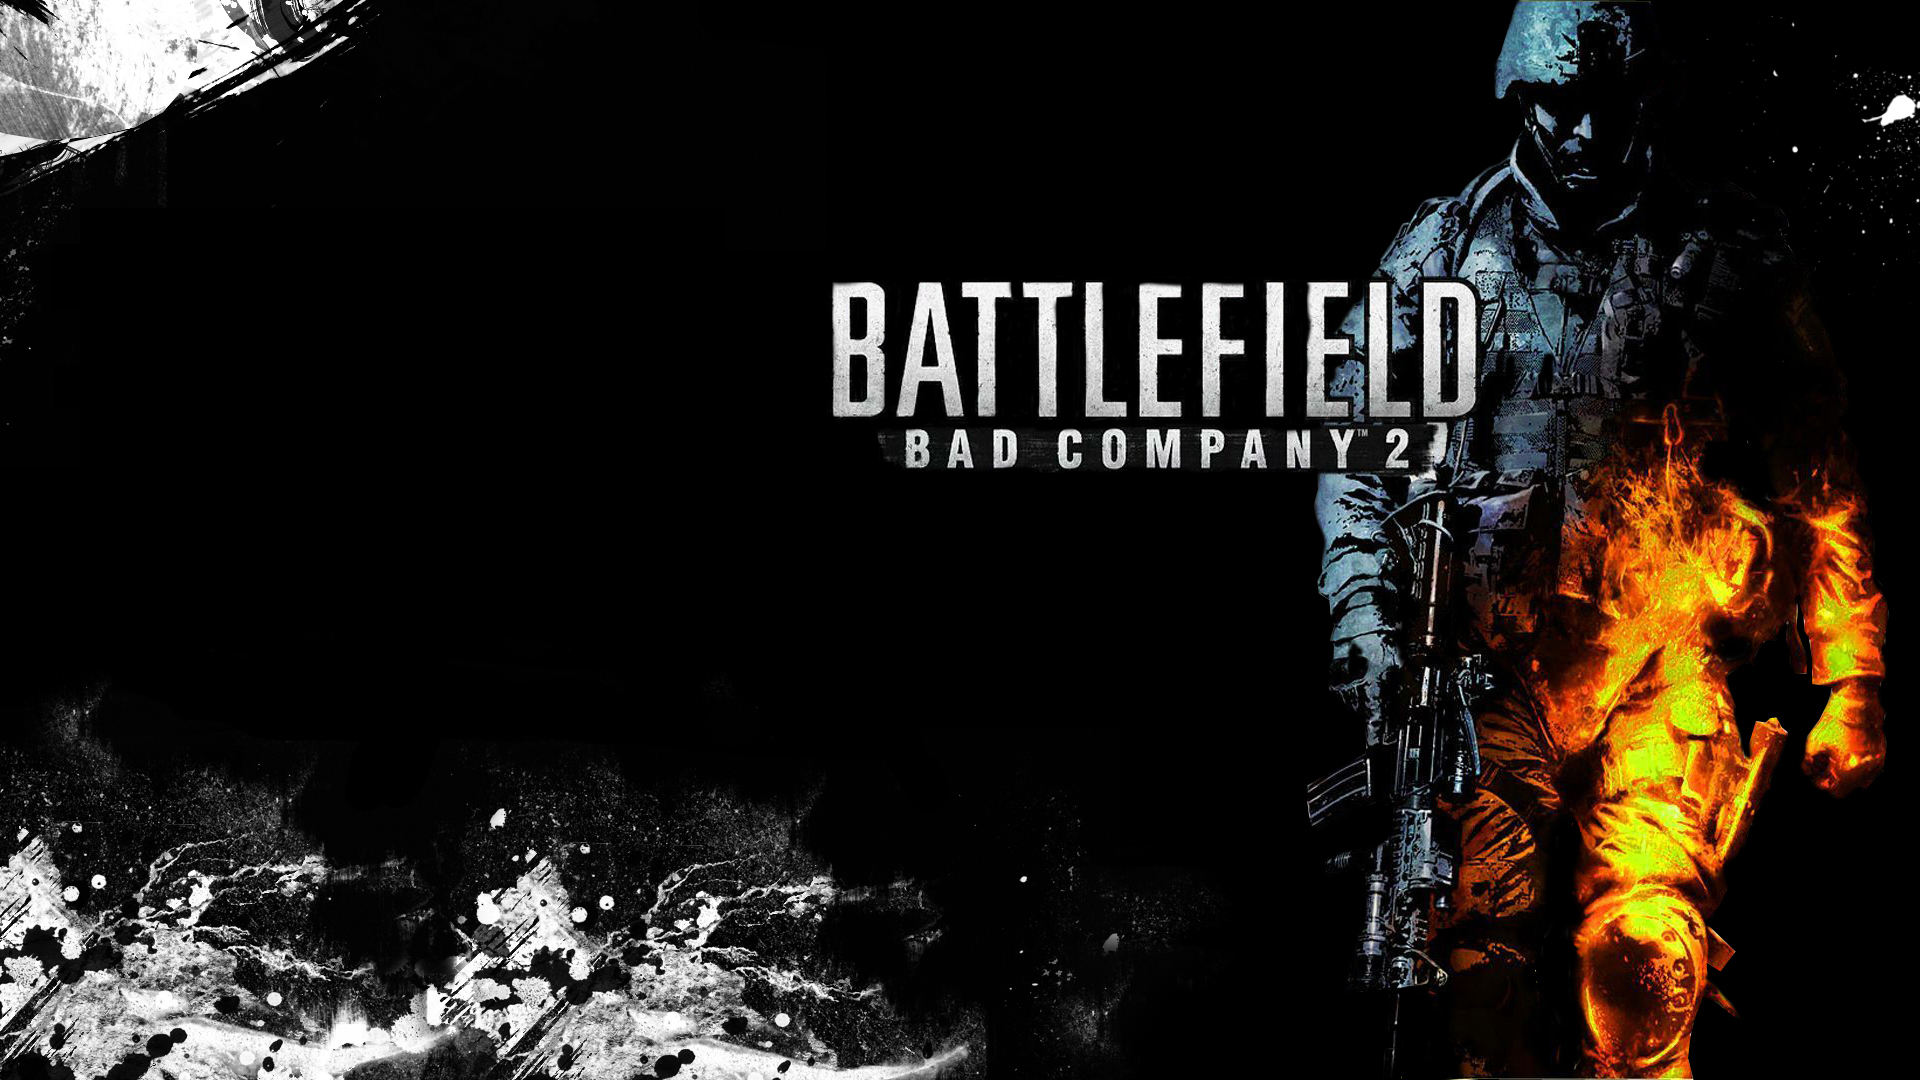 Battlefield bad company wallpaper - photo#8